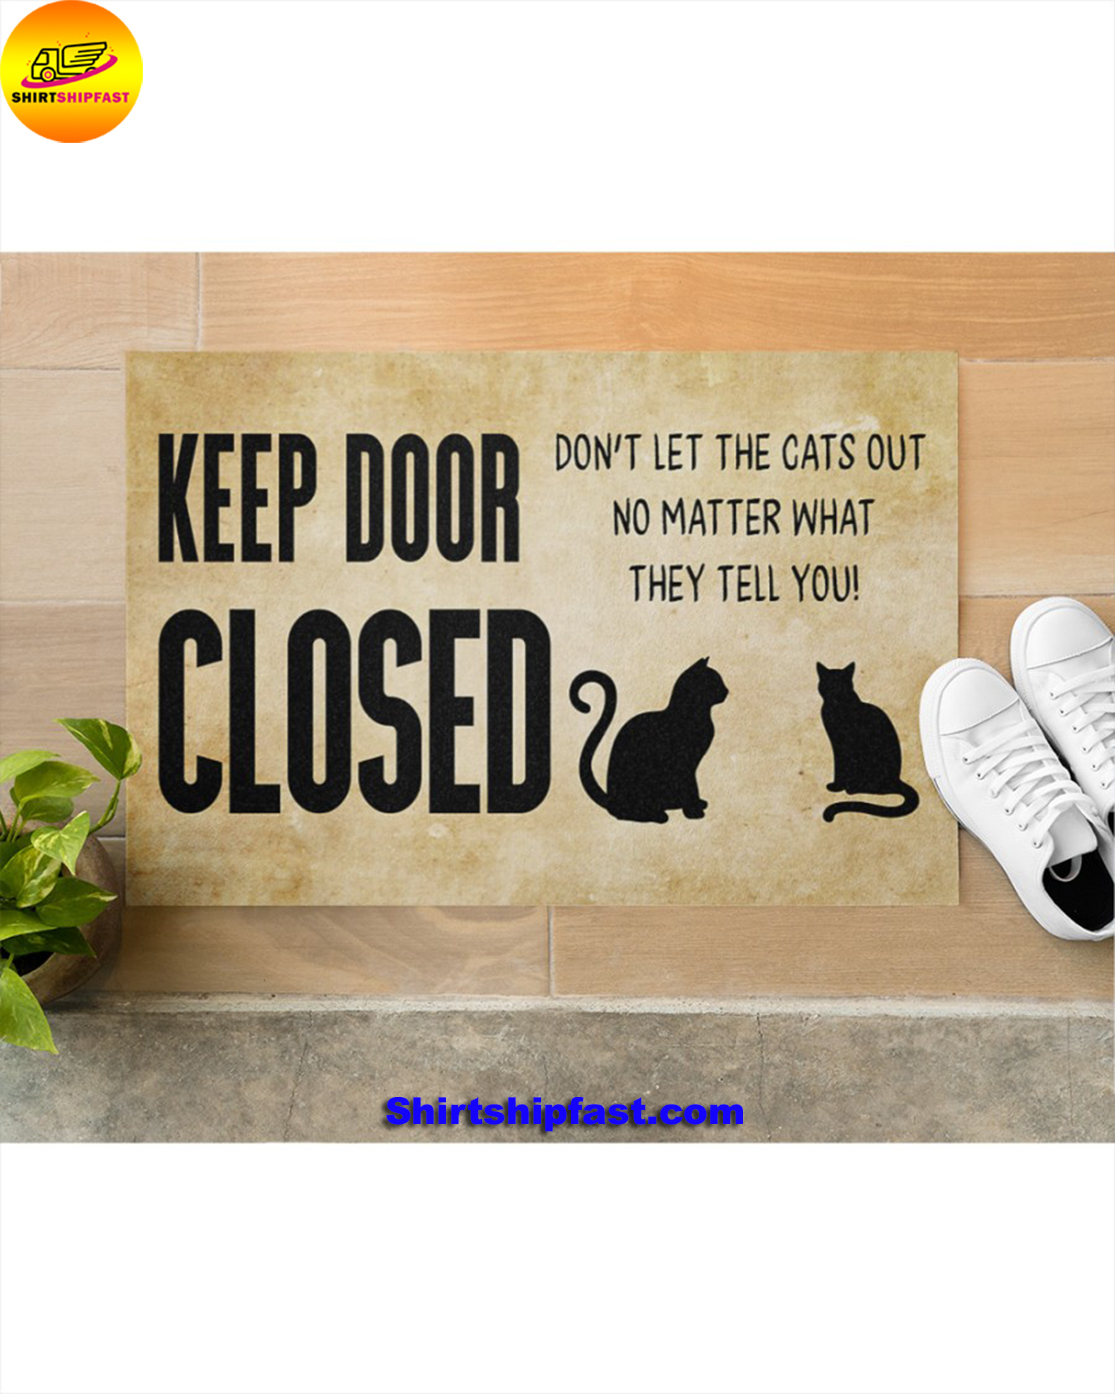 Keep door closed Don't let the cats out no matter what they tell you doormat - Picture 3